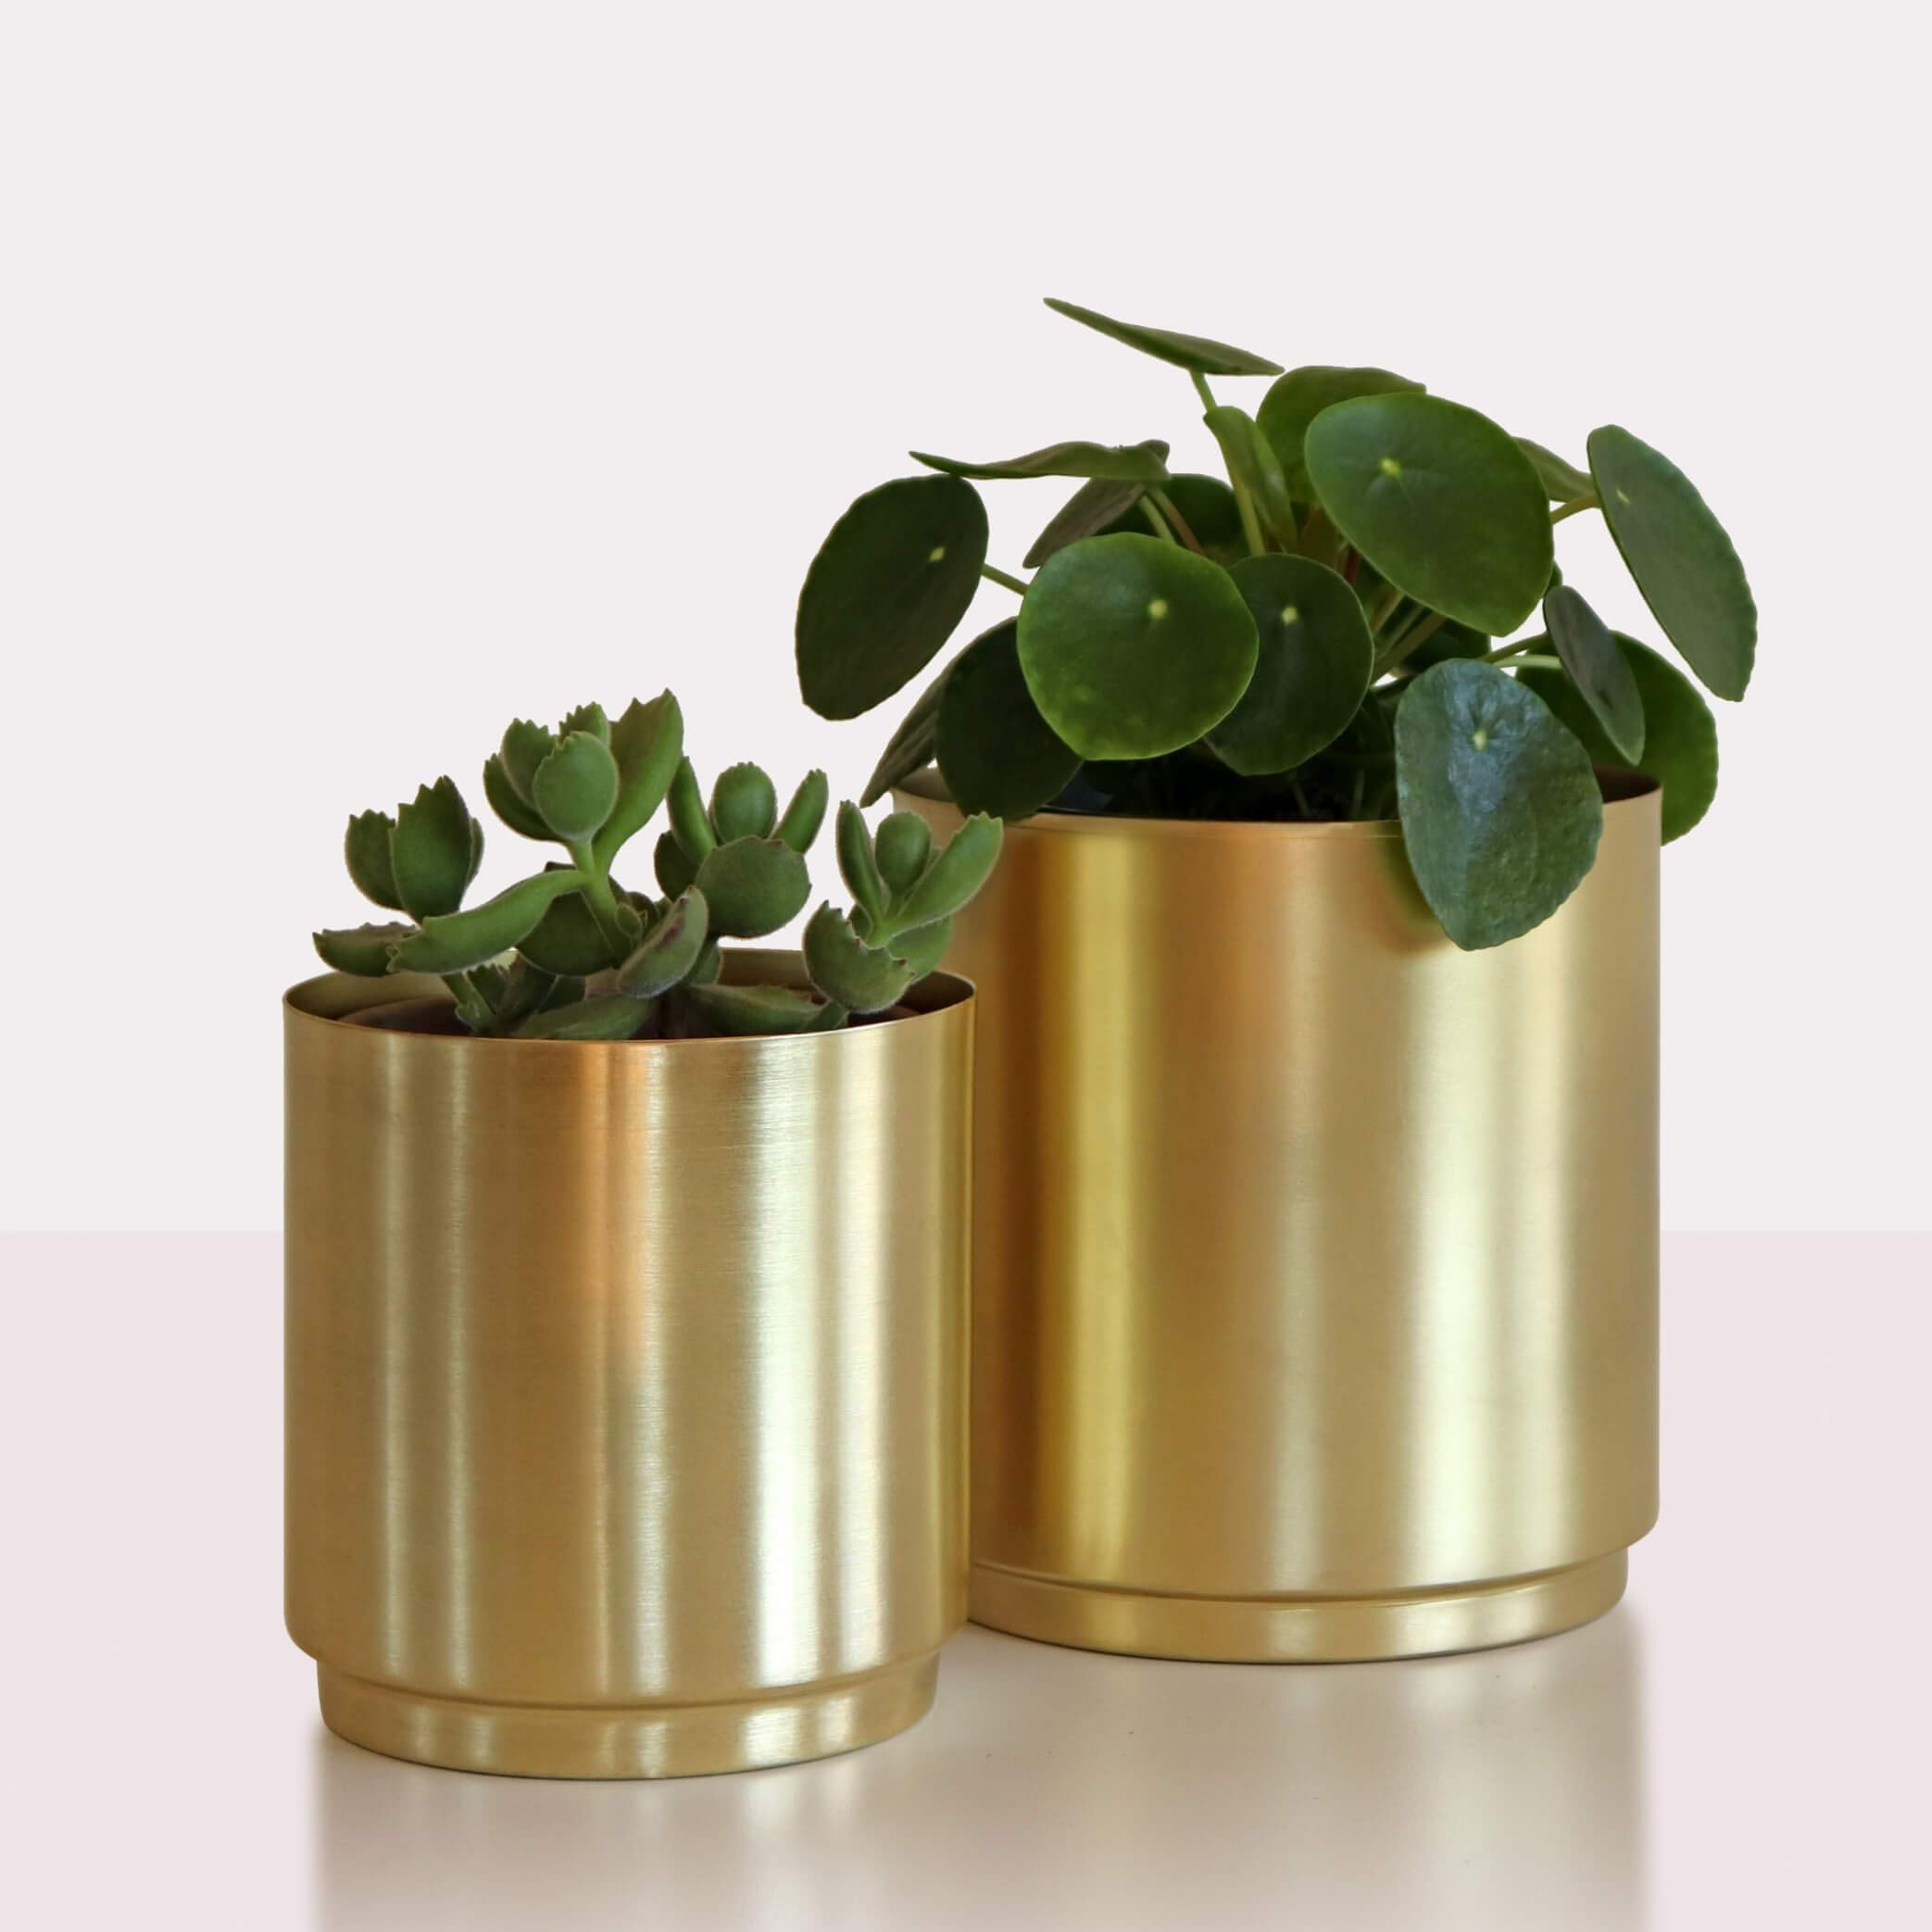 Brass Metal Planters - Set of Two Flower Pots | Modern Gold Indoor Plant Pots, 5'' & 6'' | Perfect for Indoor Plants and House Plants (Set of Two - 5'' & 6'')